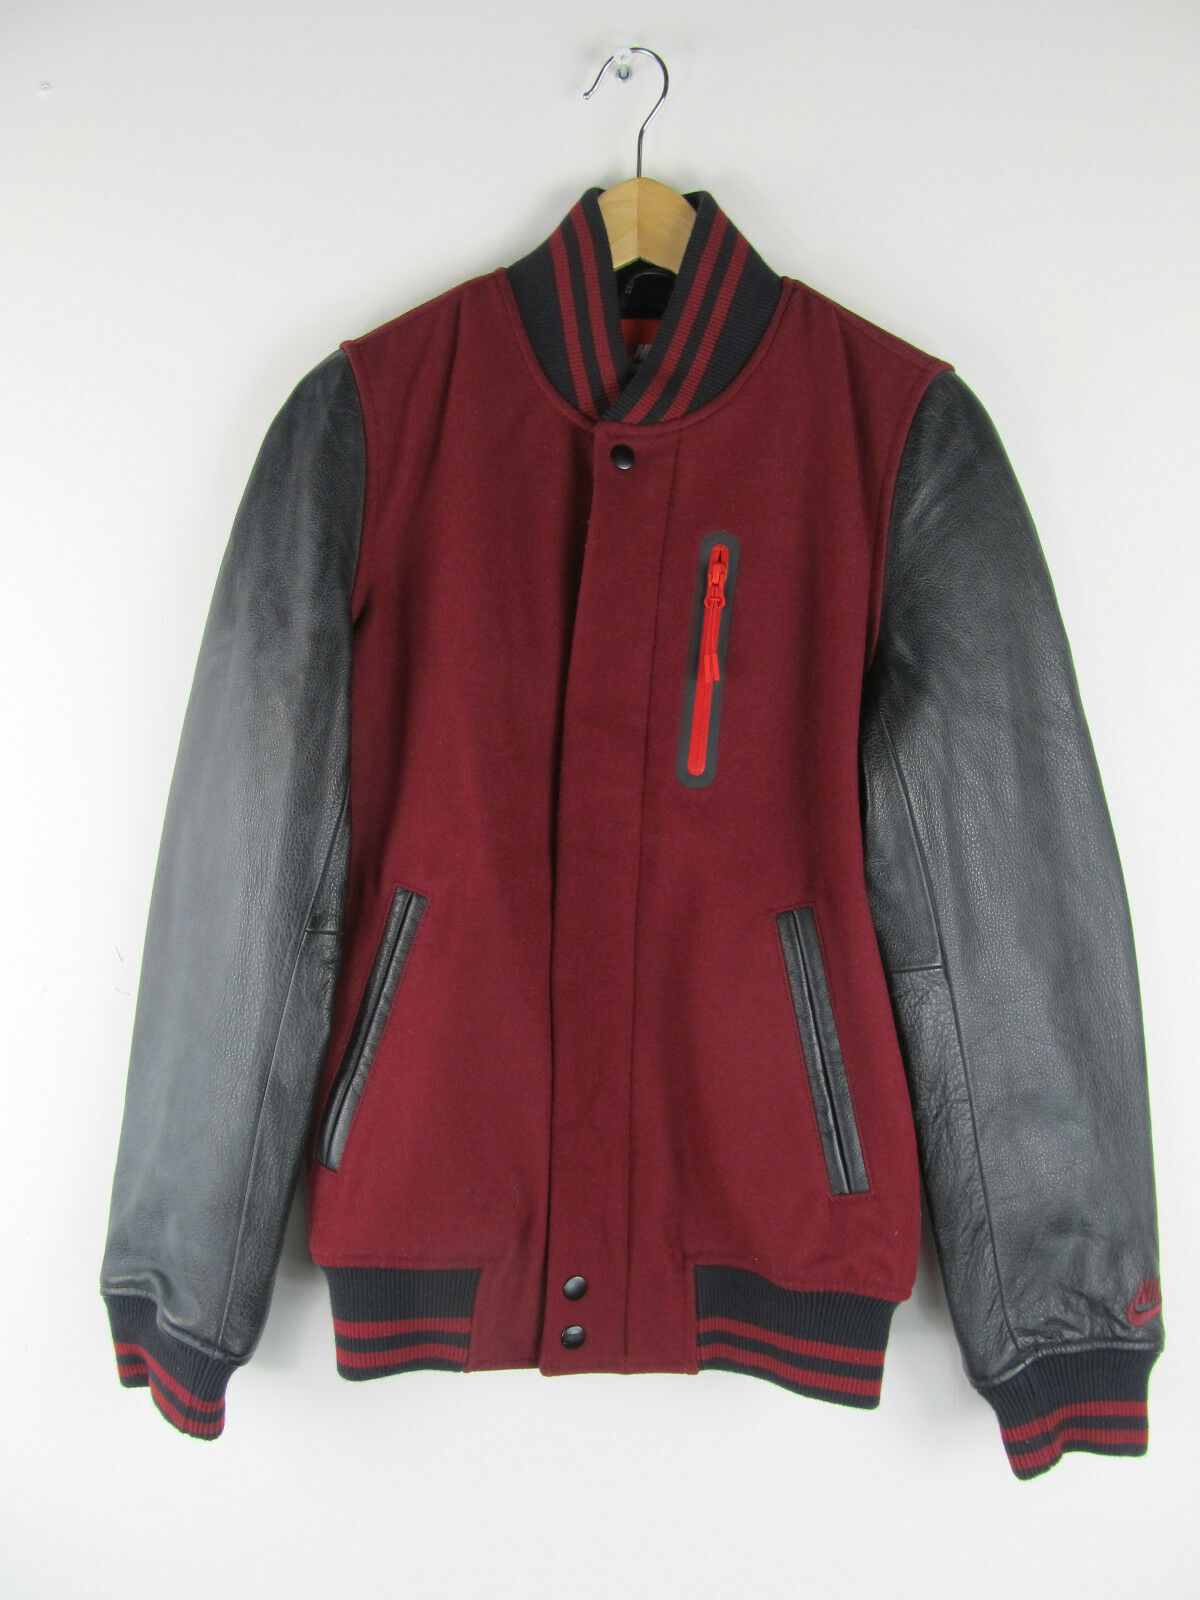 Nike Air NSW Destructor Jacke Team Max 90 Red & amp;Chaqueta negra 545942 677 Nueva XS